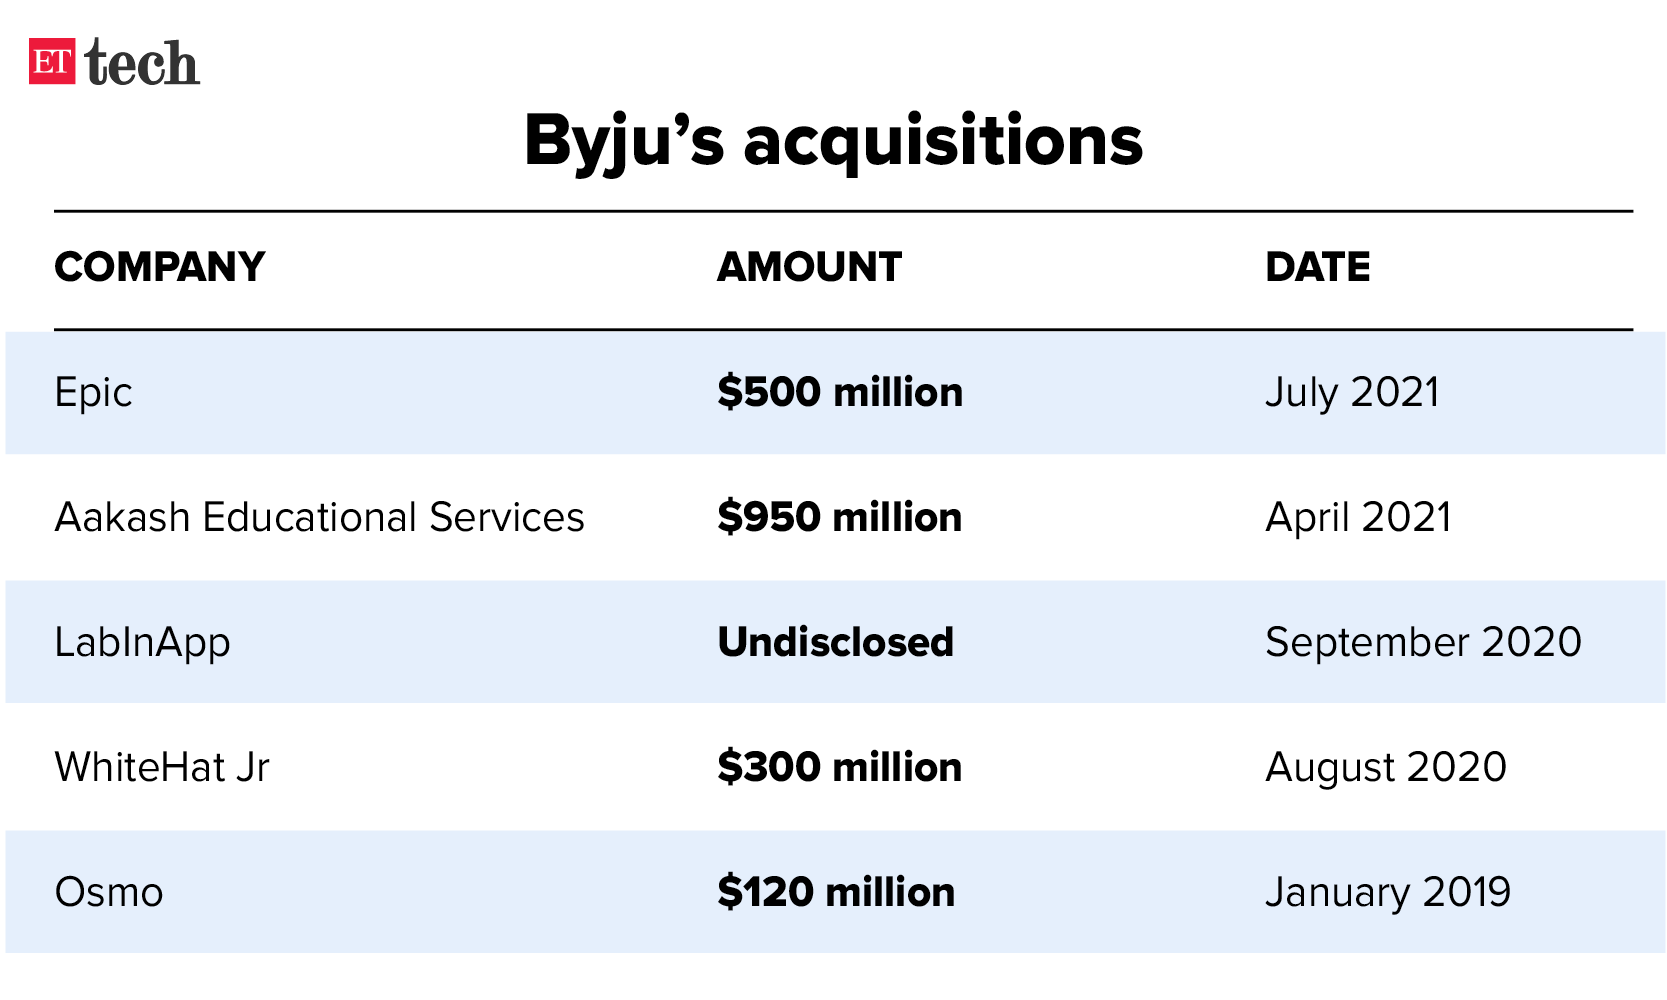 Byju acquisitions